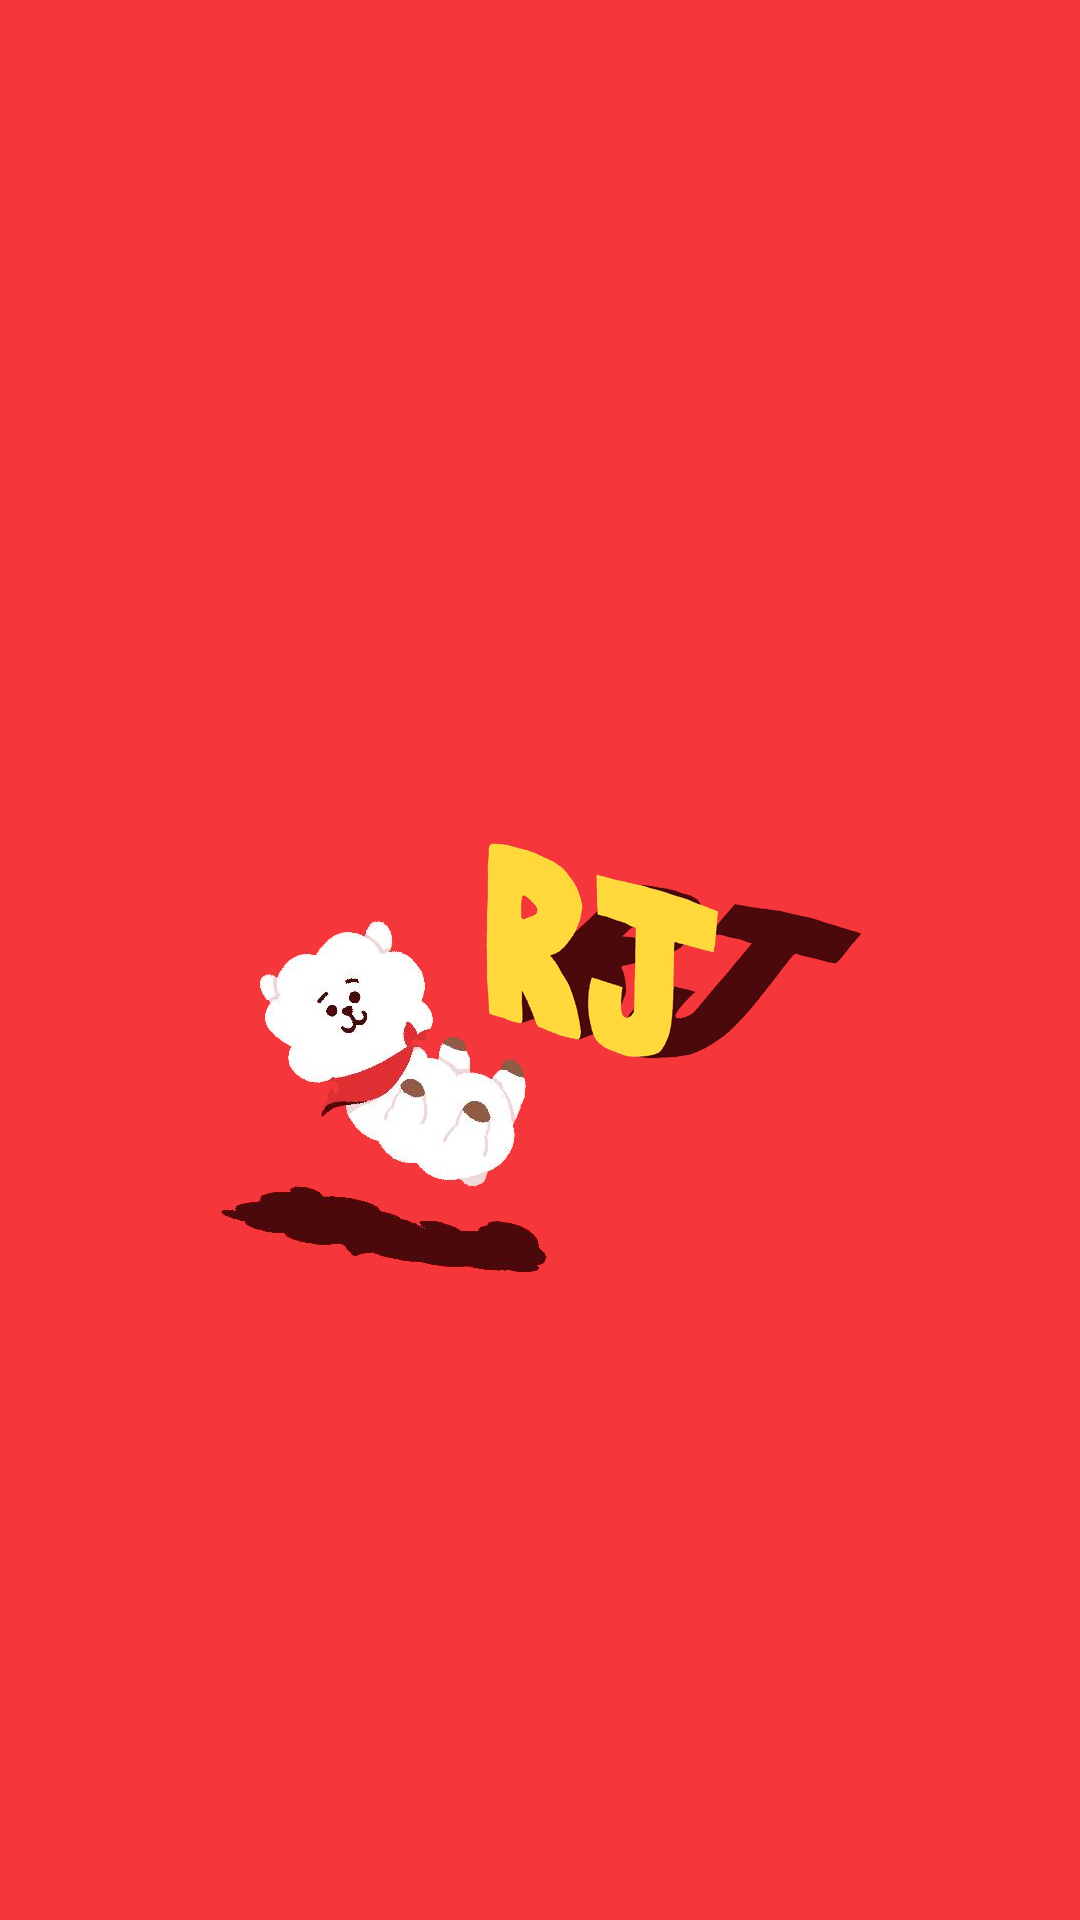 Pin Bts Bt21 Wallpaper Hd Images To Pinterest